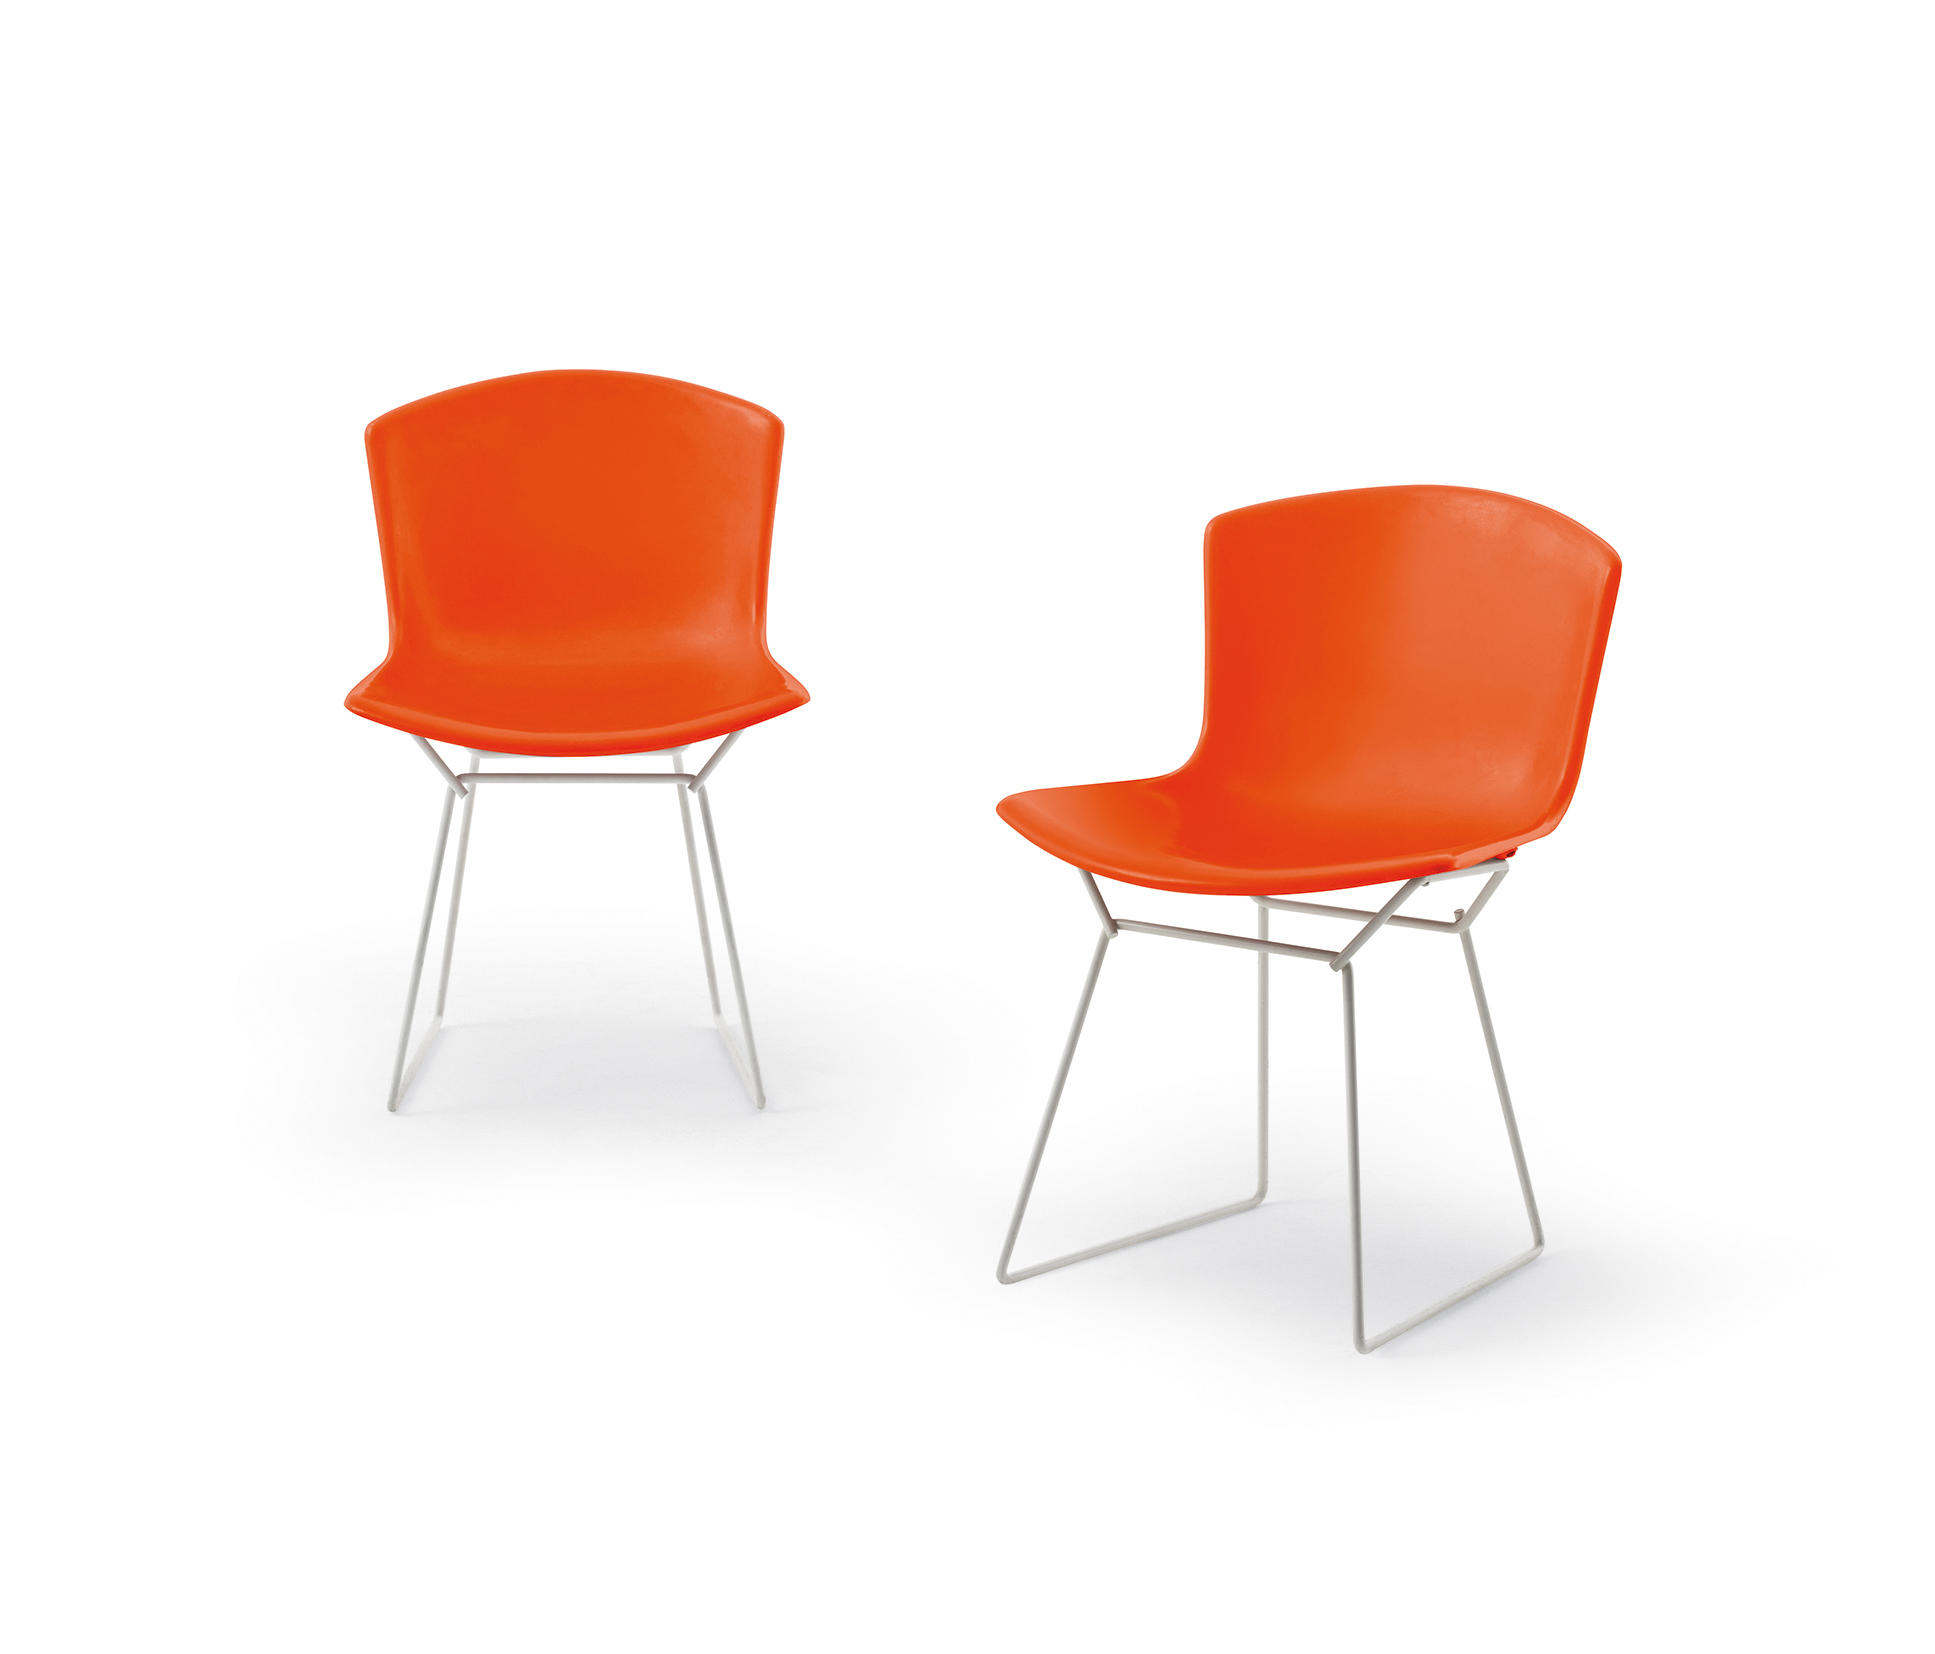 bertoia side chair upholstered dining chairs set of 2 visitors from